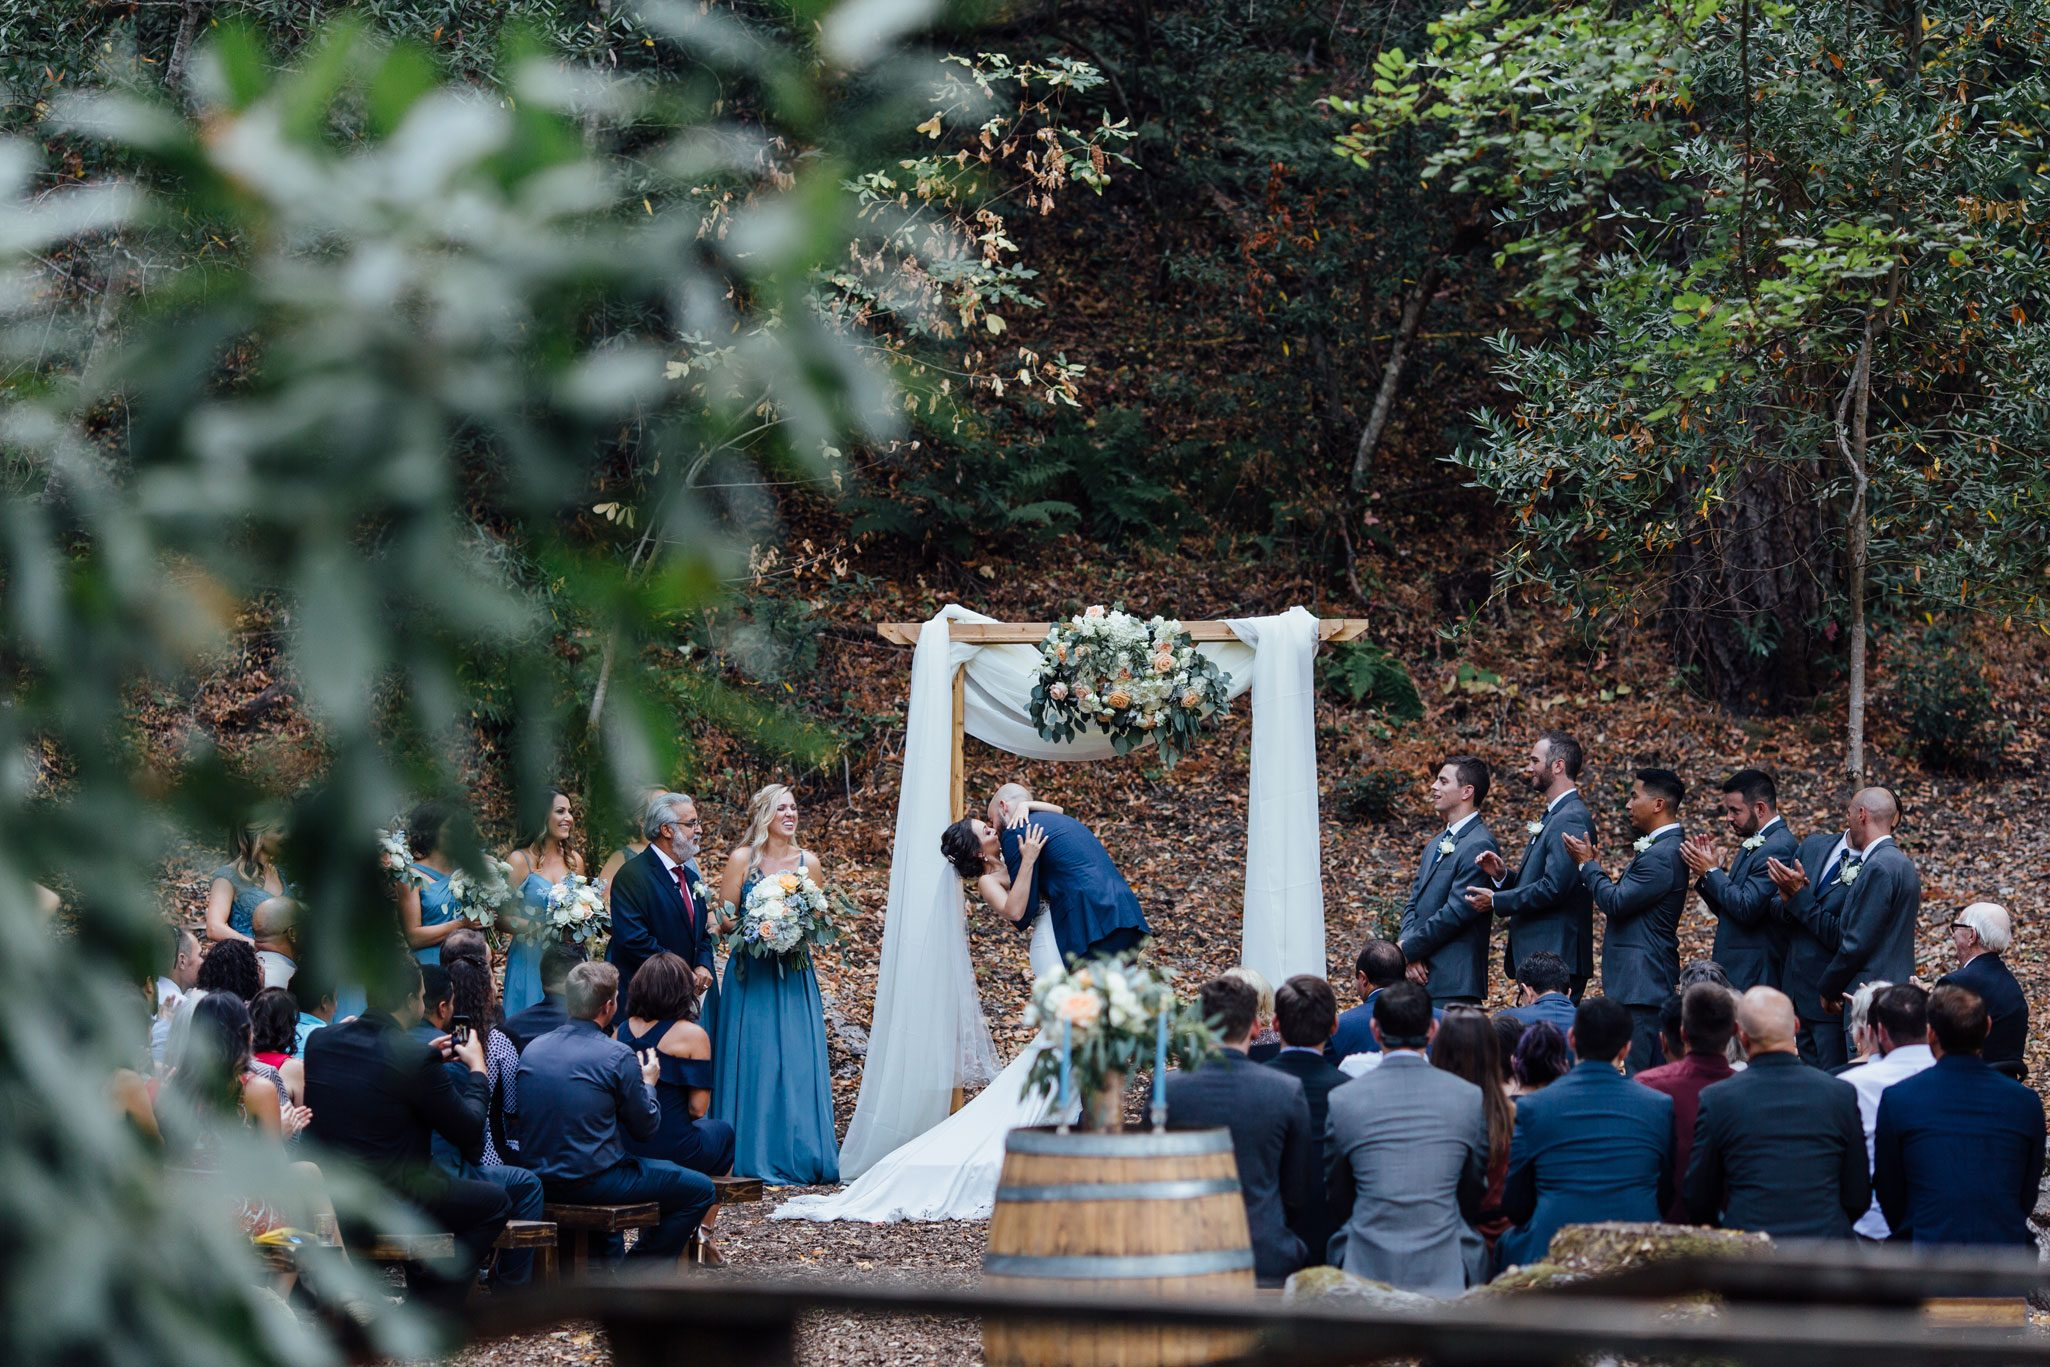 Ceremony kiss from a Romantic Backyard Wedding in Wine Country, Napa Valley California